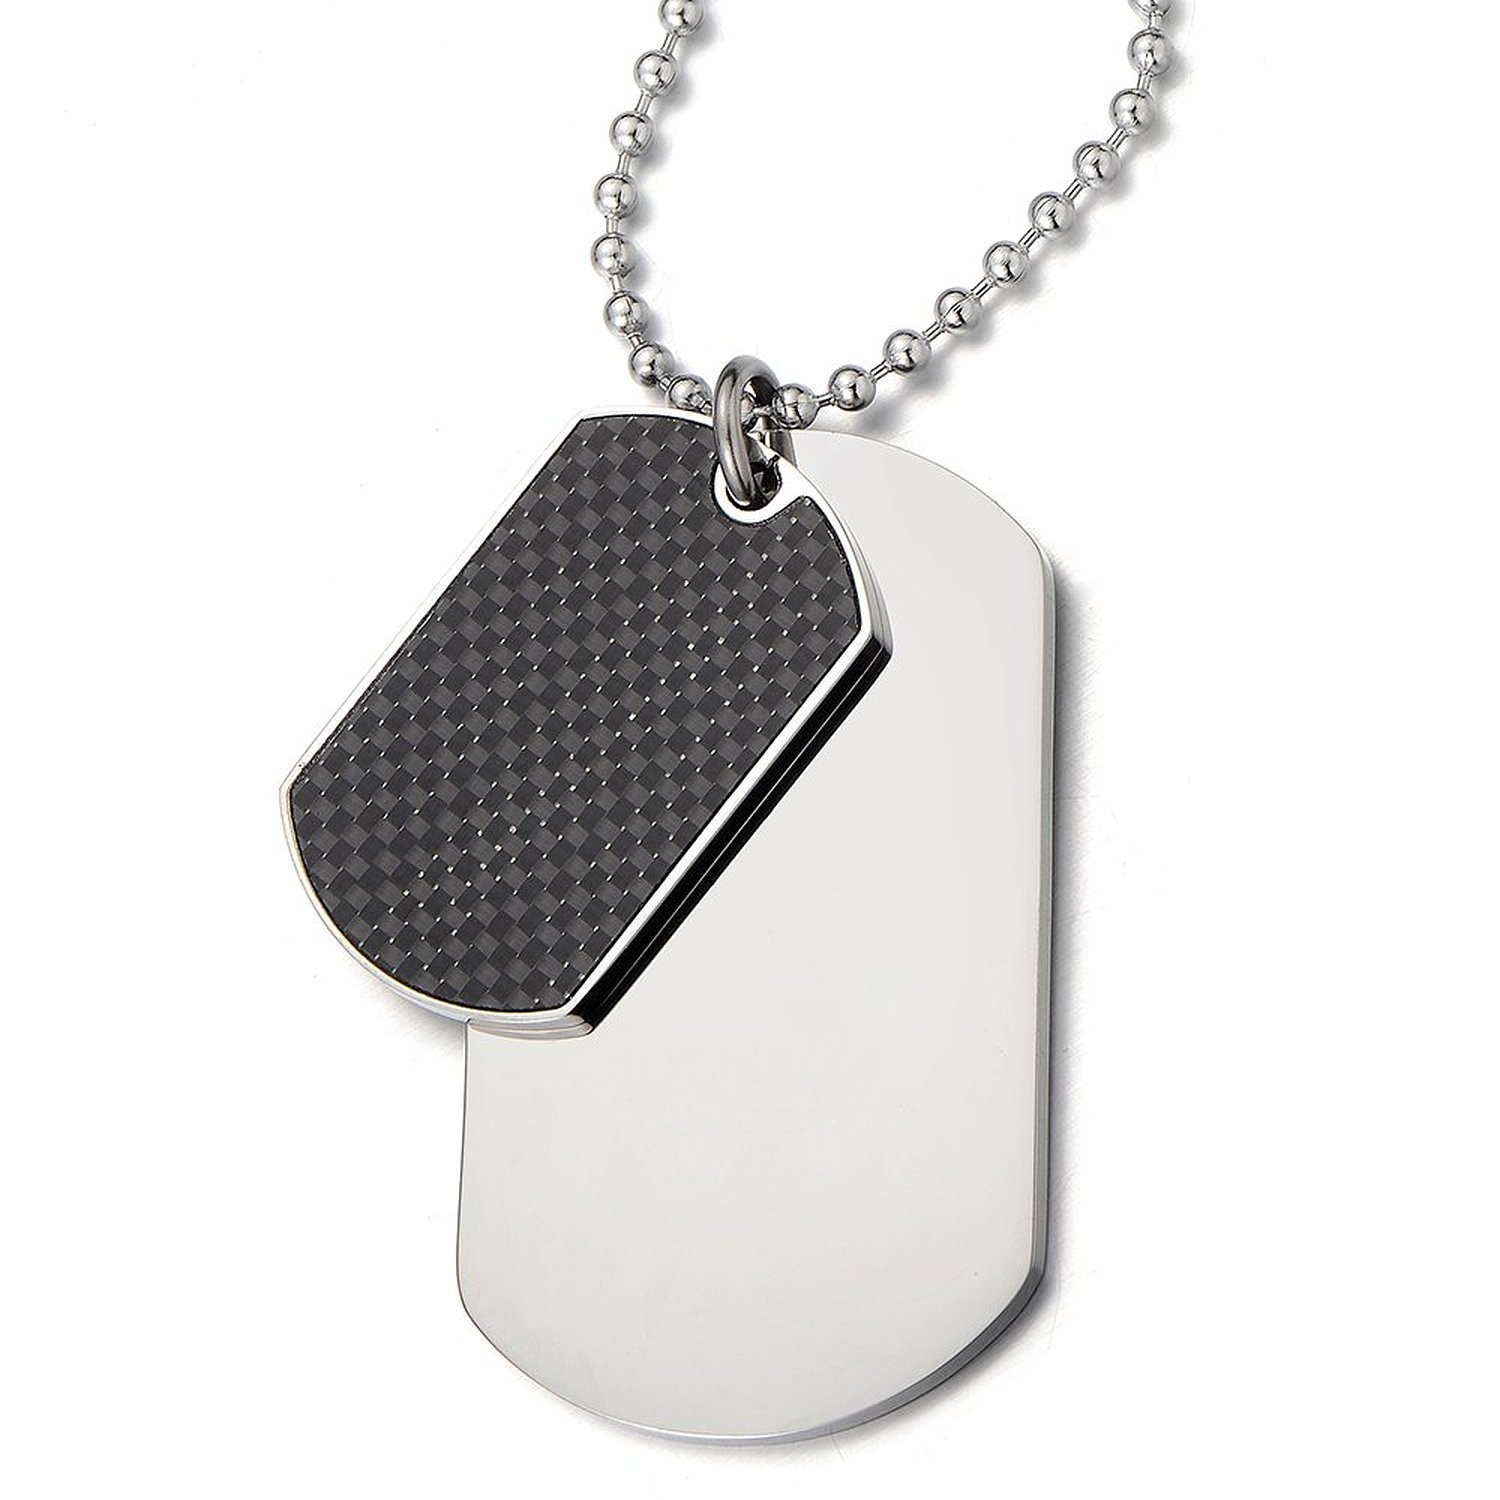 Steel Two-pieces Mens Dog Tag Pendant Necklace with Carbon Fiber and 23.6 inches Steel Ball Chain COOLSTEELANDBEYOND MP-346-CA